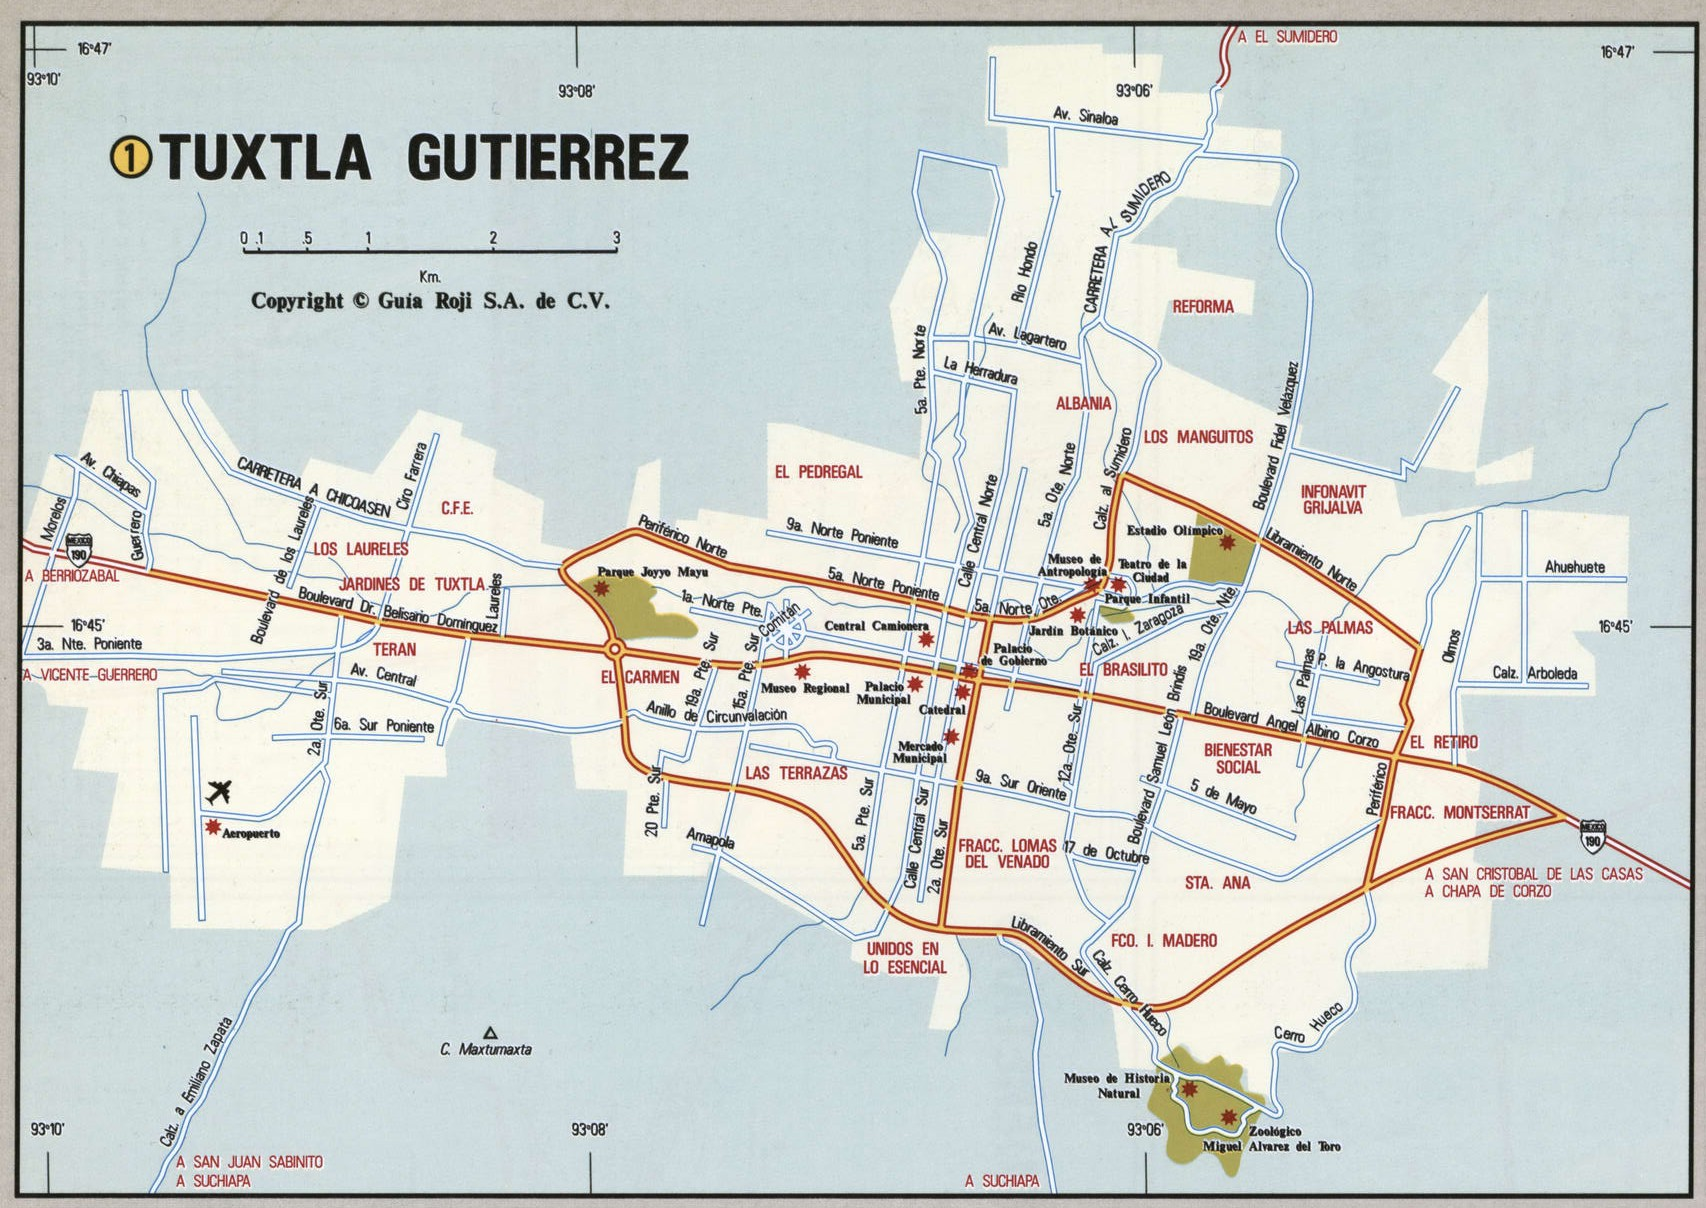 Tuxtla Gutierrez city map